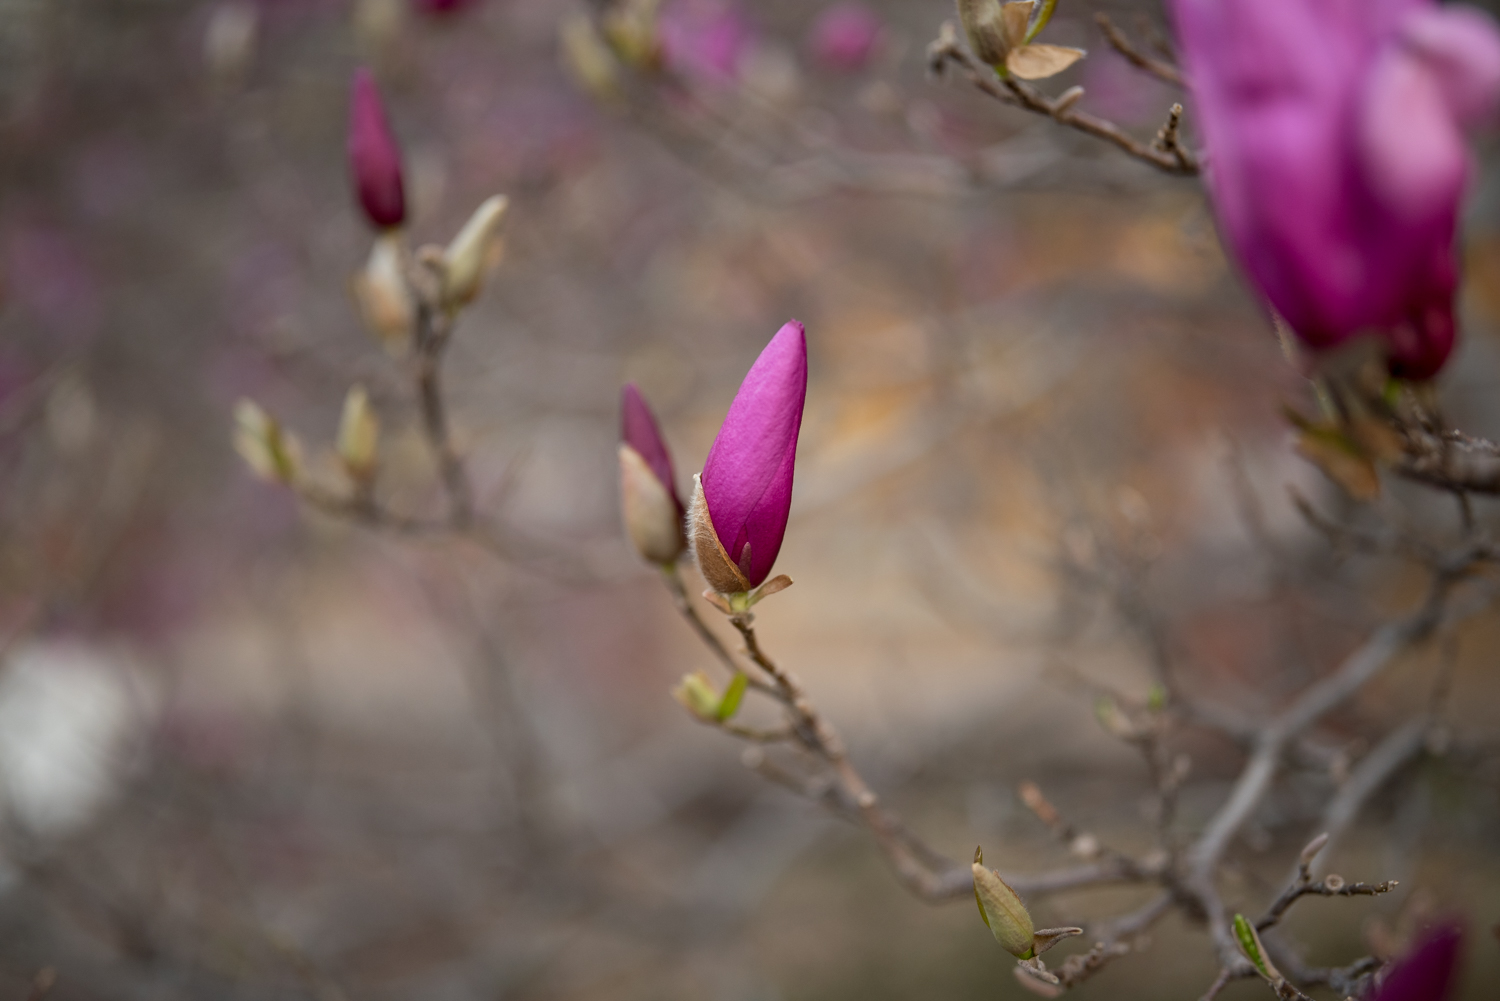 https://i0.wp.com/digital-photography-school.com/wp-content/uploads/2019/03/sigma-40mm-lens-review-magnolia-closed.jpg?resize=1500%2C1001&ssl=1